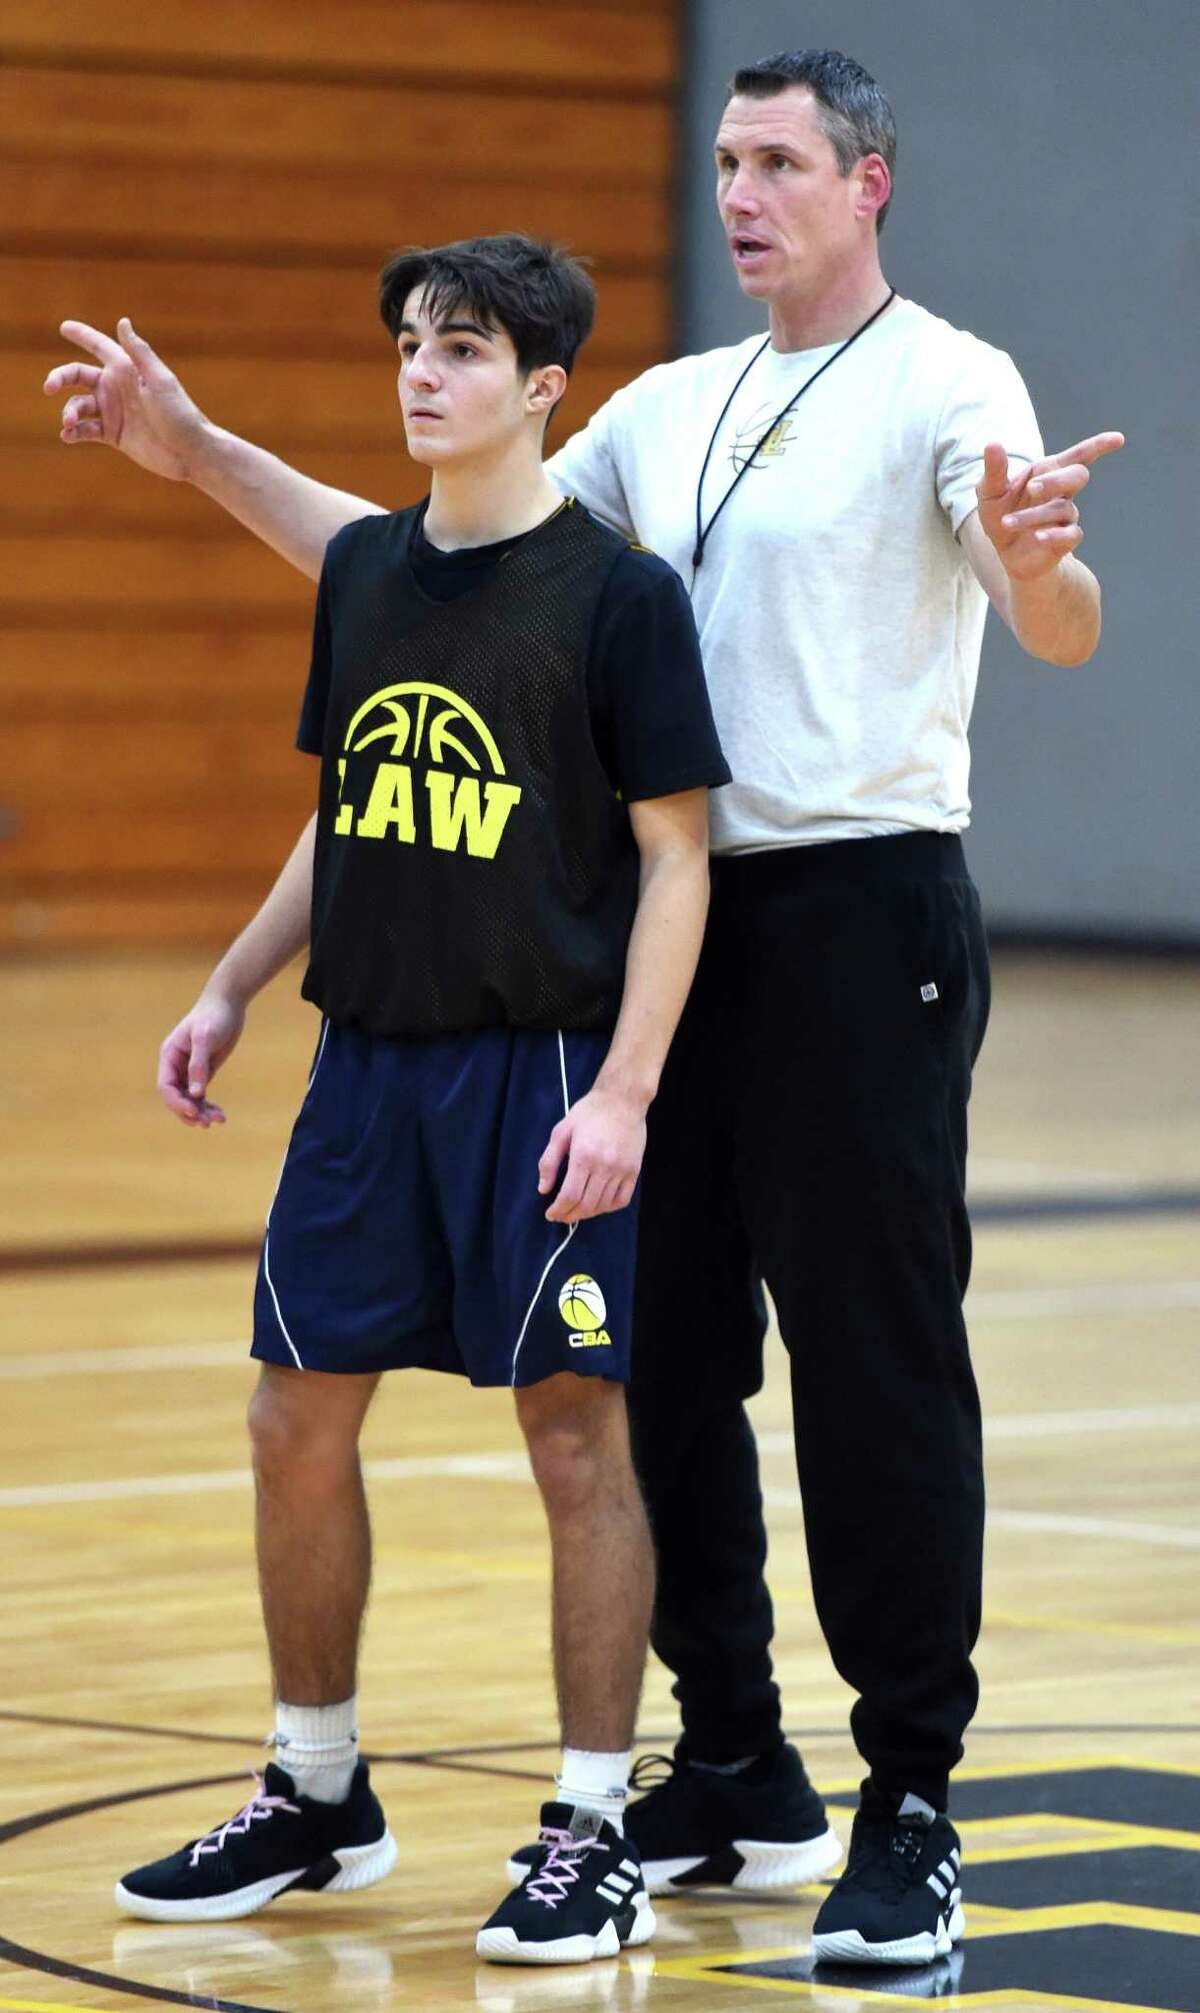 Law coach Jamie Anderson, right, goes over positioning with Jake Faller during practice in Milford on Friday.